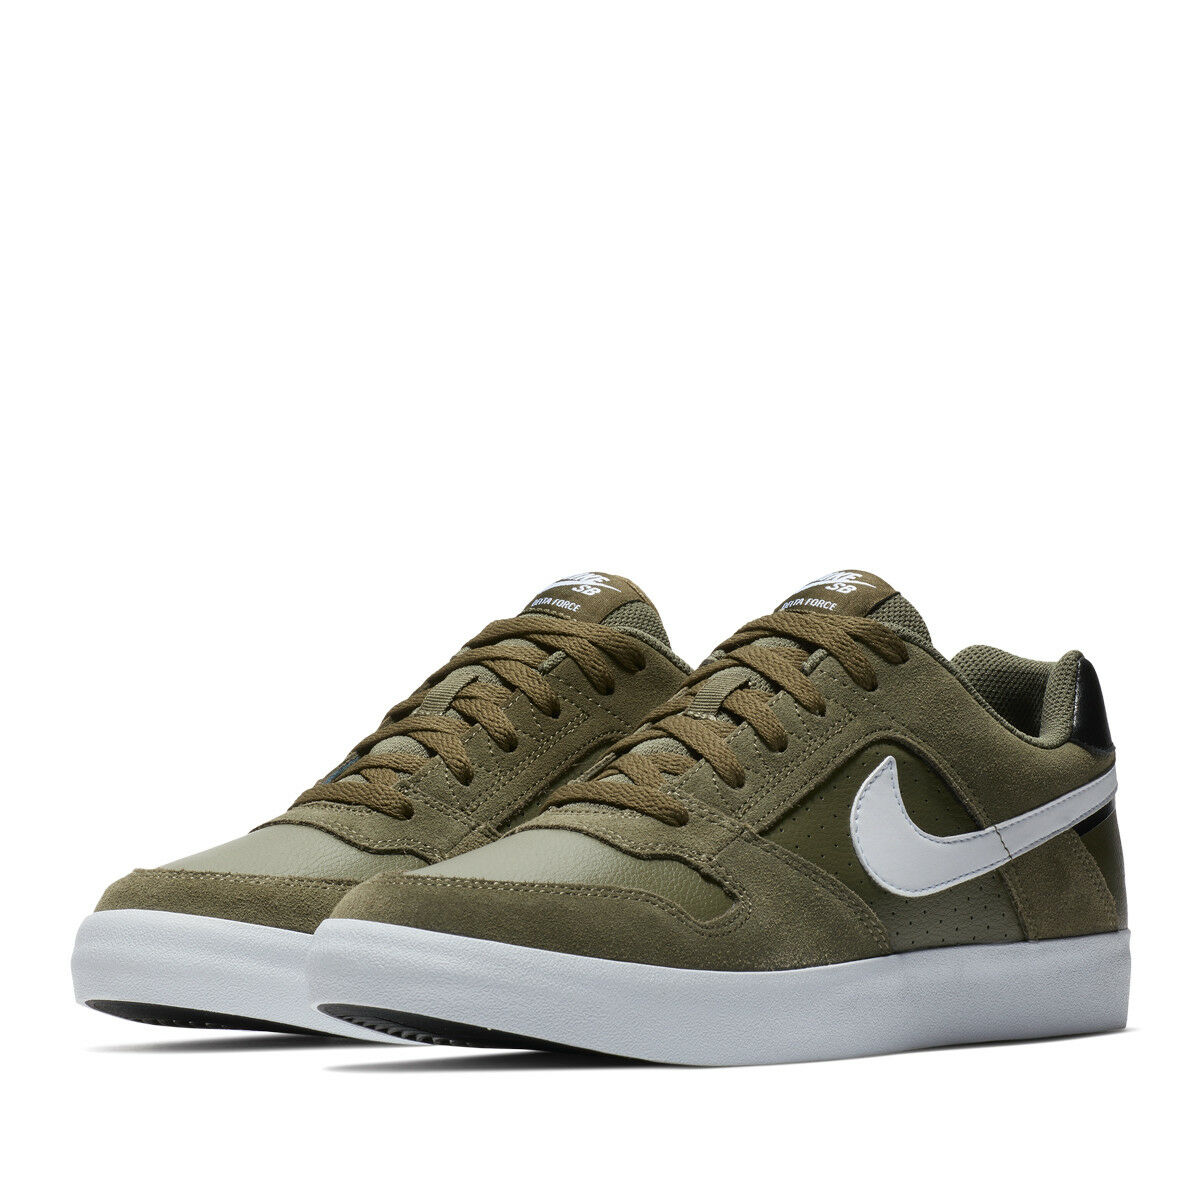 NIKE SB DELTA FORCE VULC SNEAKERS MEN SHOES OLIVE WHITE 42237-200 SIZE 10 NEW